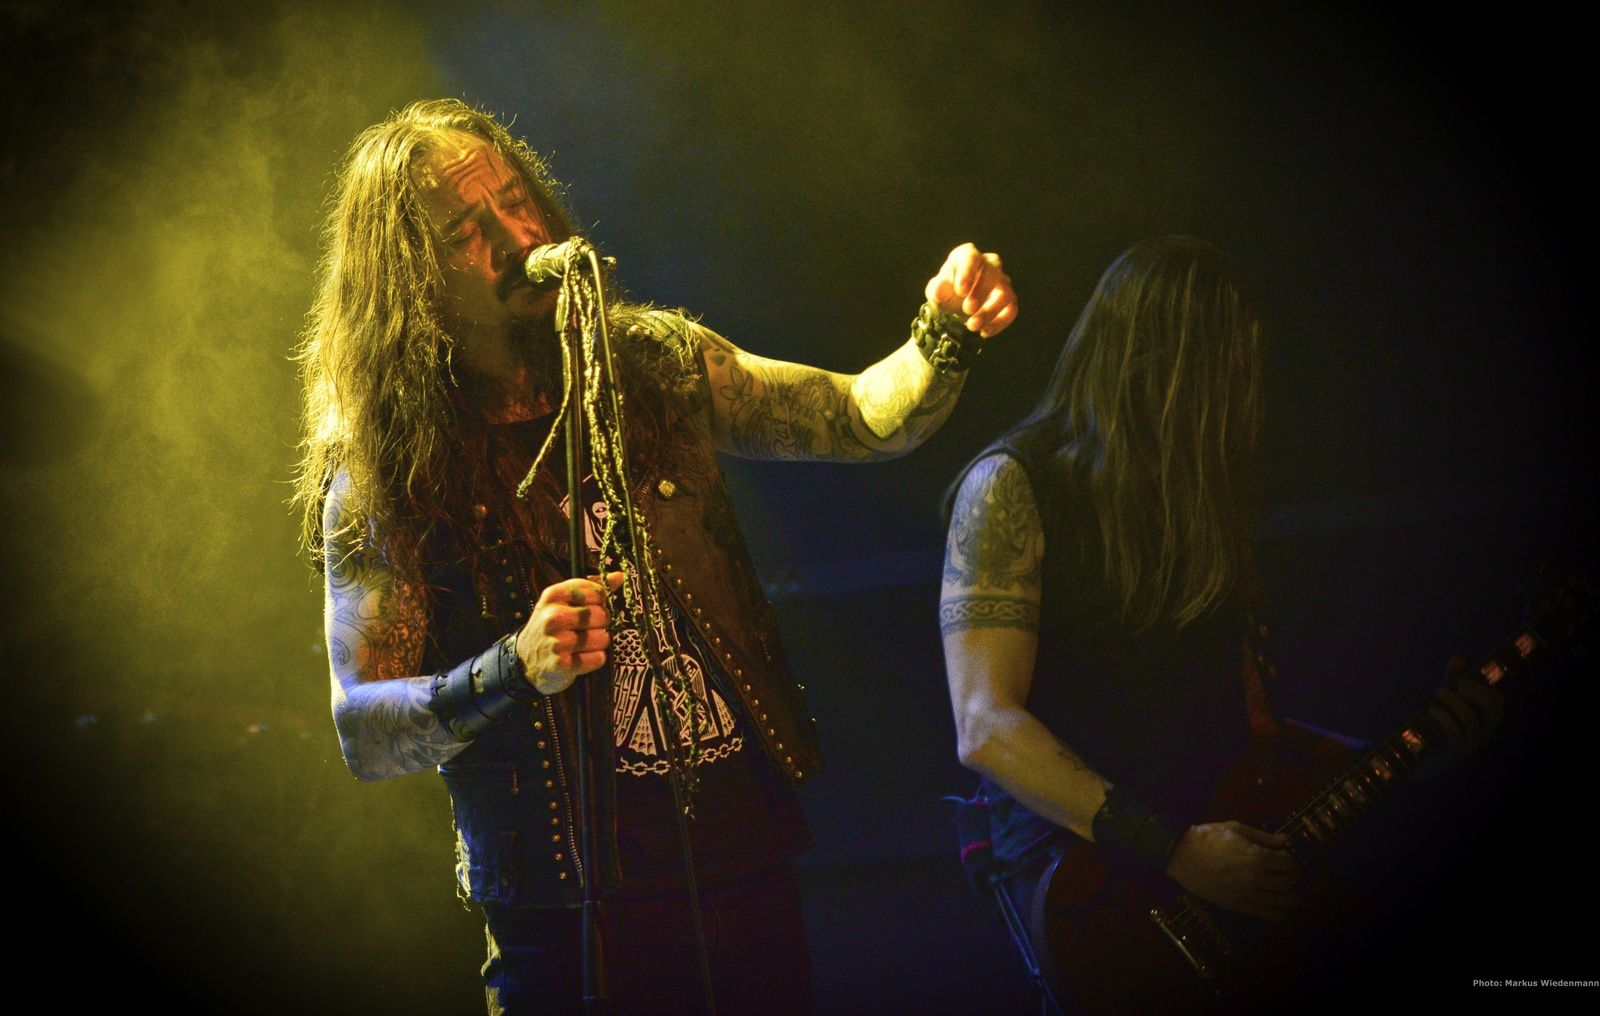 Live review AMORPHIS / LONG DISTANCE CALLING, 013, Tilburg, 01.12.2016